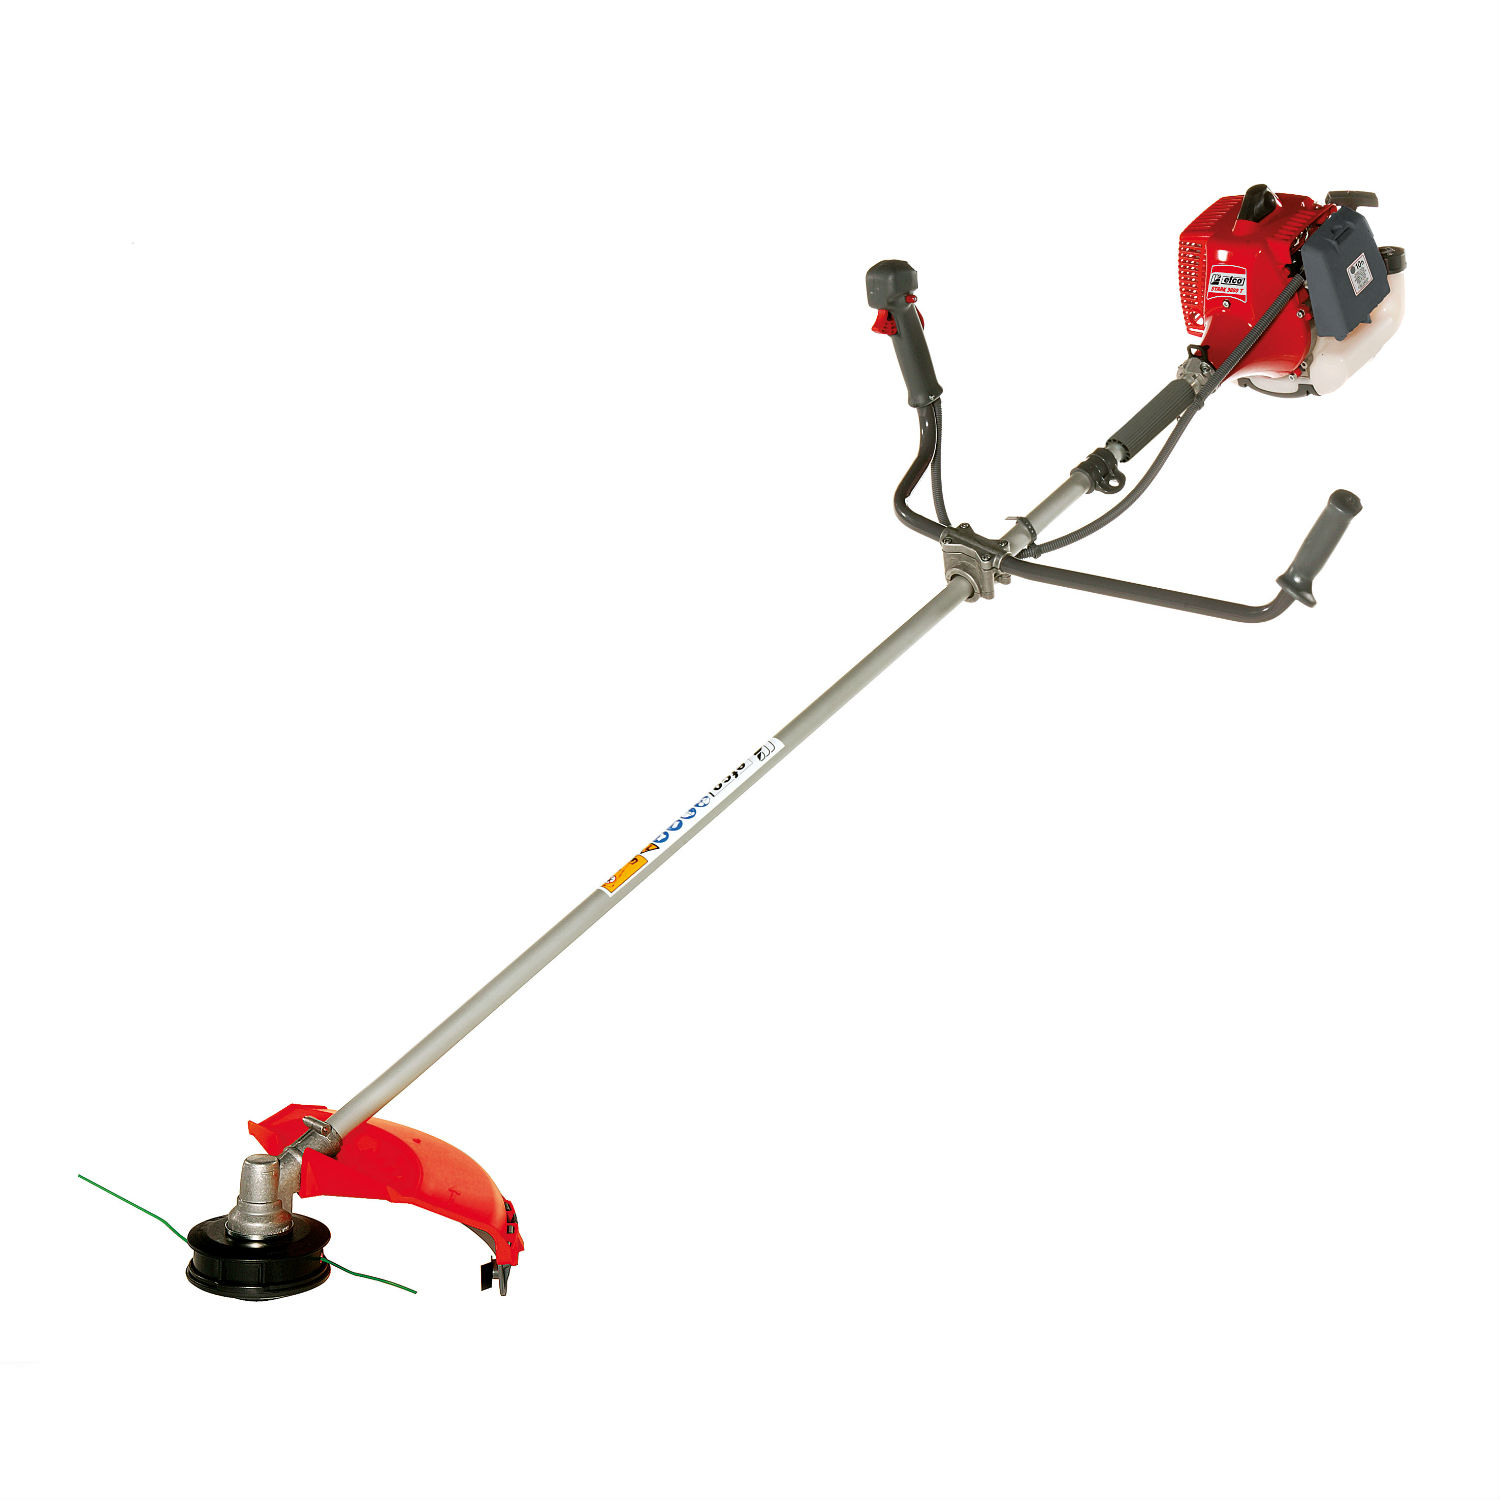 Efco Stark 3800T Heavy Duty Petrol Brushcutter with Low Emission Engine